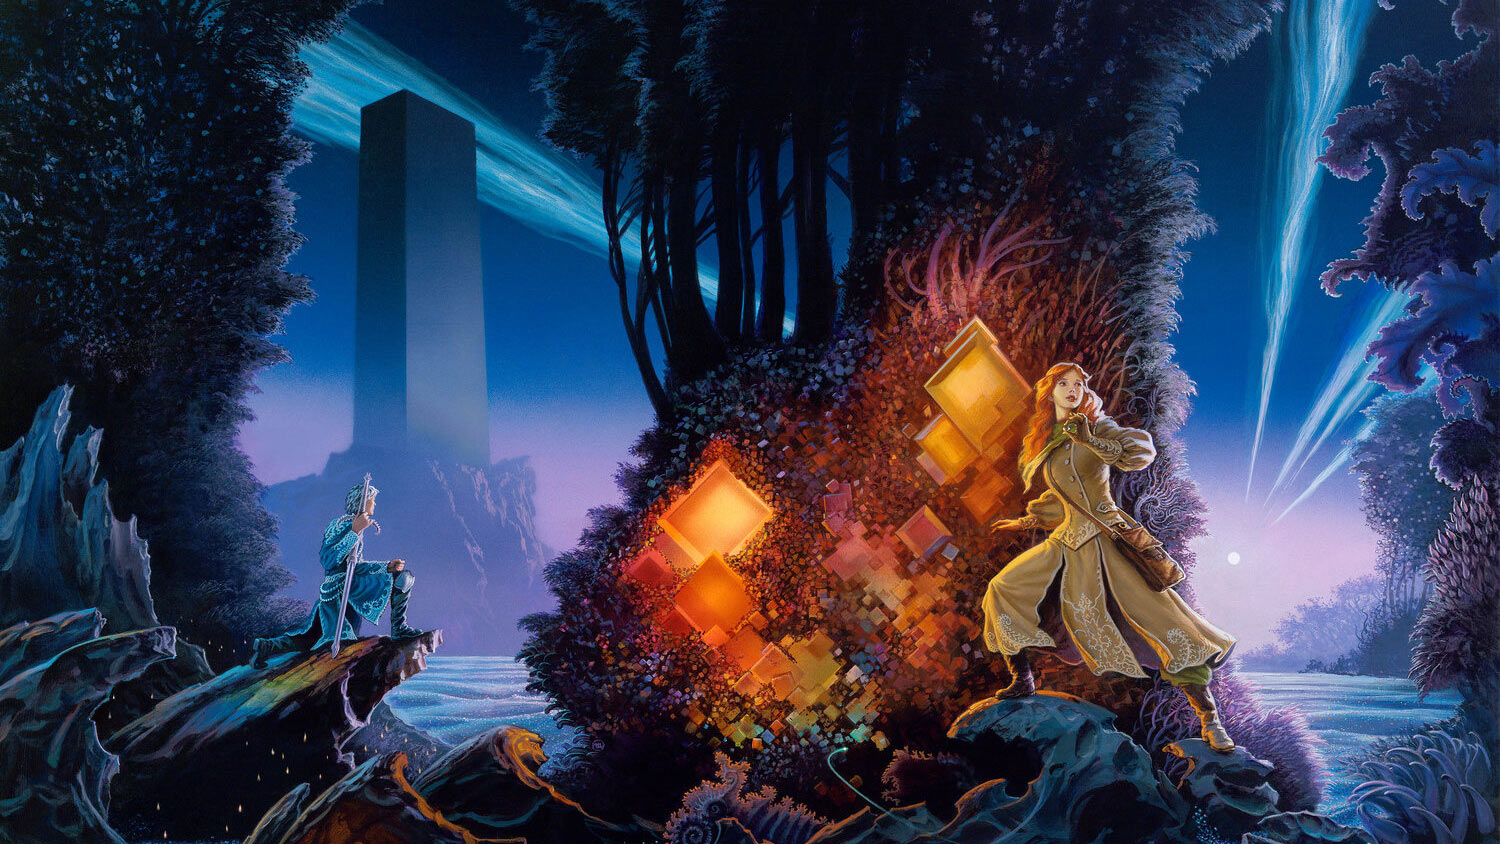 The Cosmere Universe Book Series in Order (with Elantris, Mistborn, Stormlight Archive, Warbreaker)